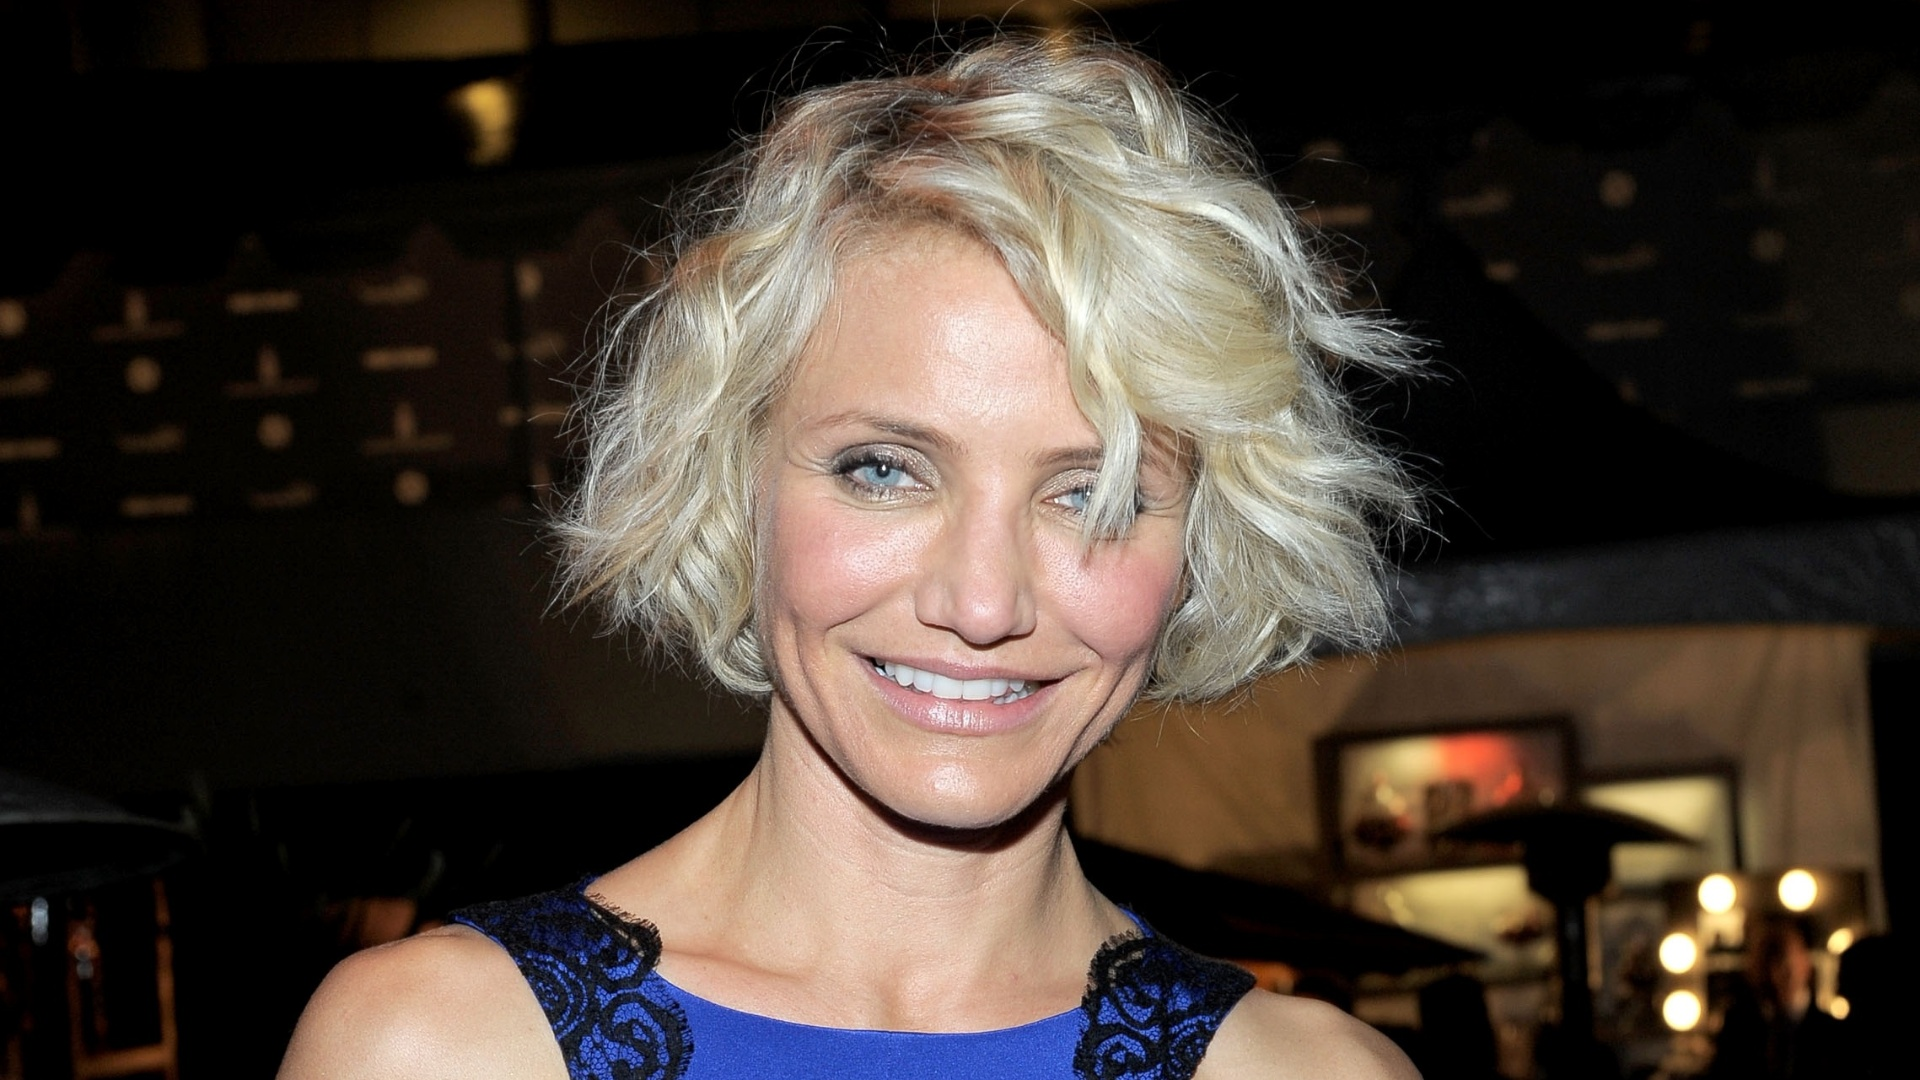 Atriz Cameron Diaz exibe cabelo curto na entrega do Globo de Ouro 2012 (15/12/11)